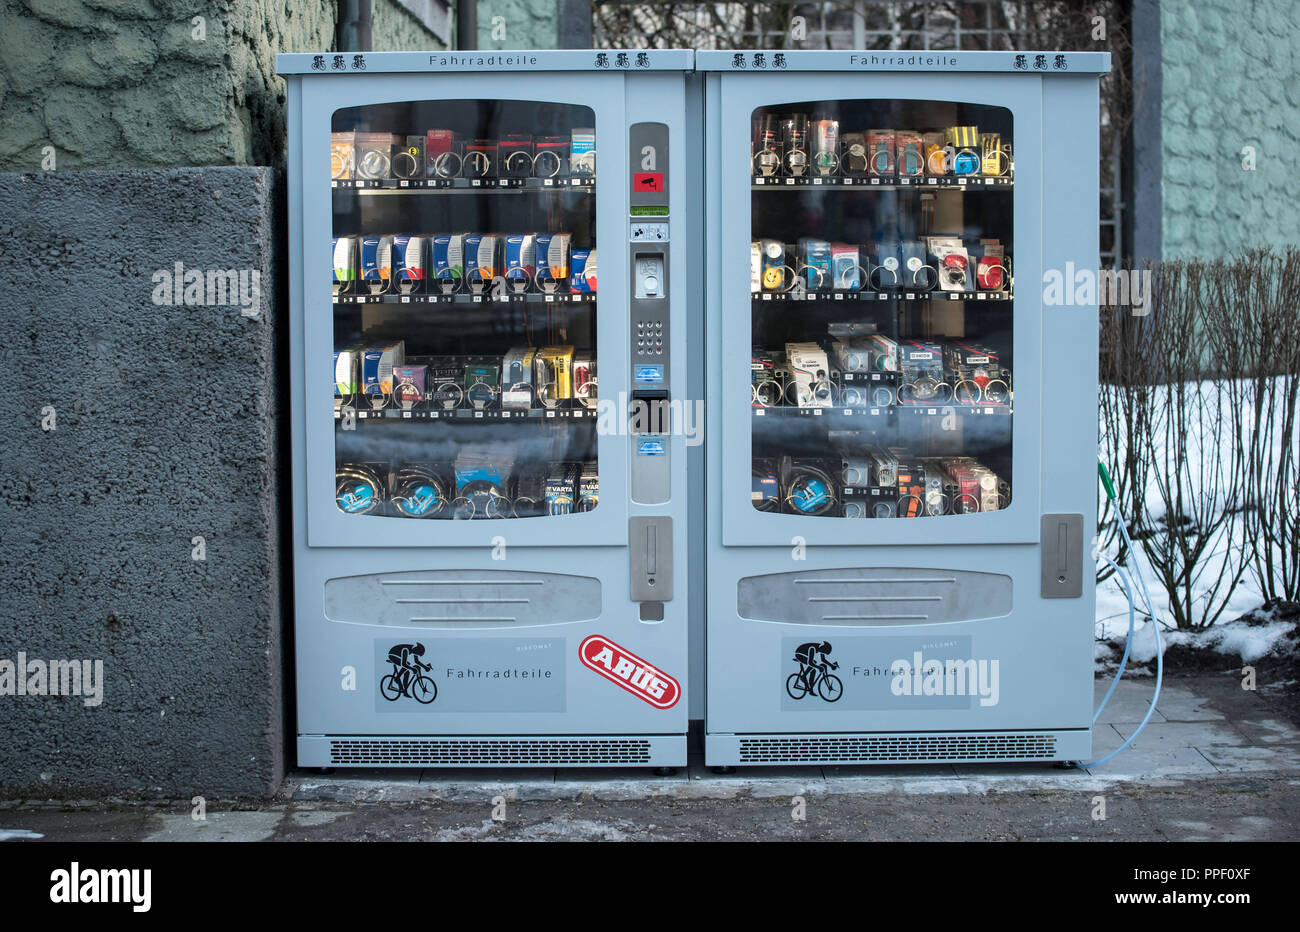 The Bike O Mat A Vending Machine With Spare Bicycle Parts In The